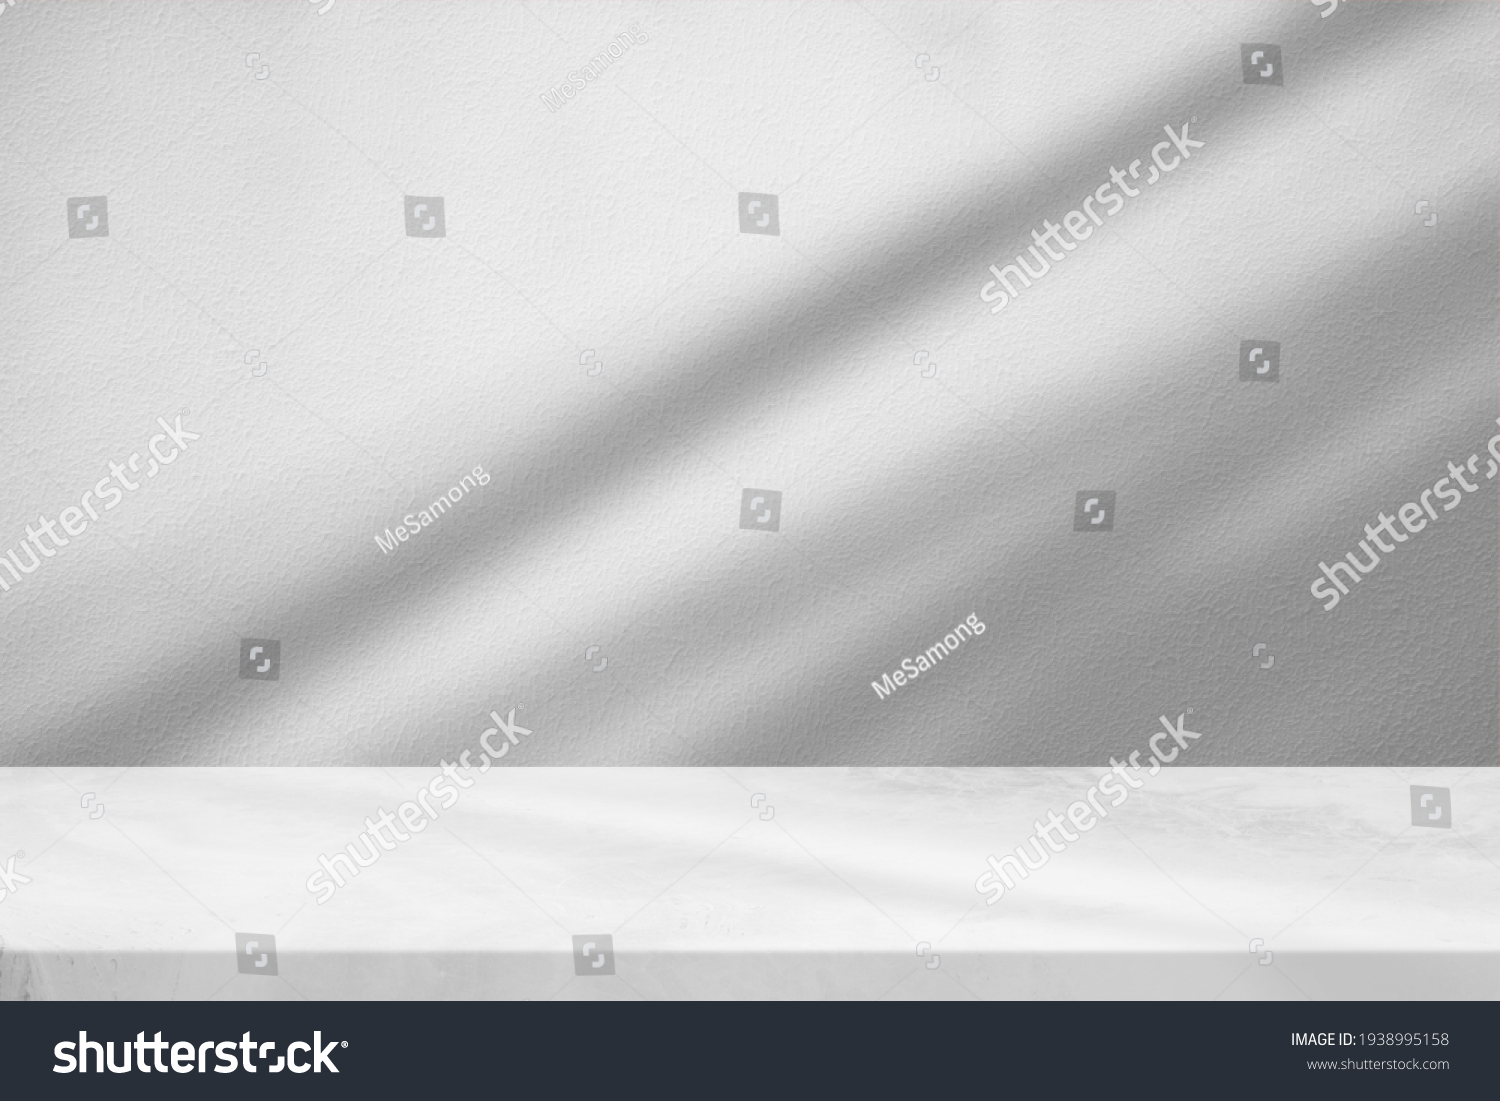 Marble Table with White Stucco Wall Texture Background with Light Beam and Shadow, Suitable for Product Presentation Backdrop, Display, and Mock up. #1938995158